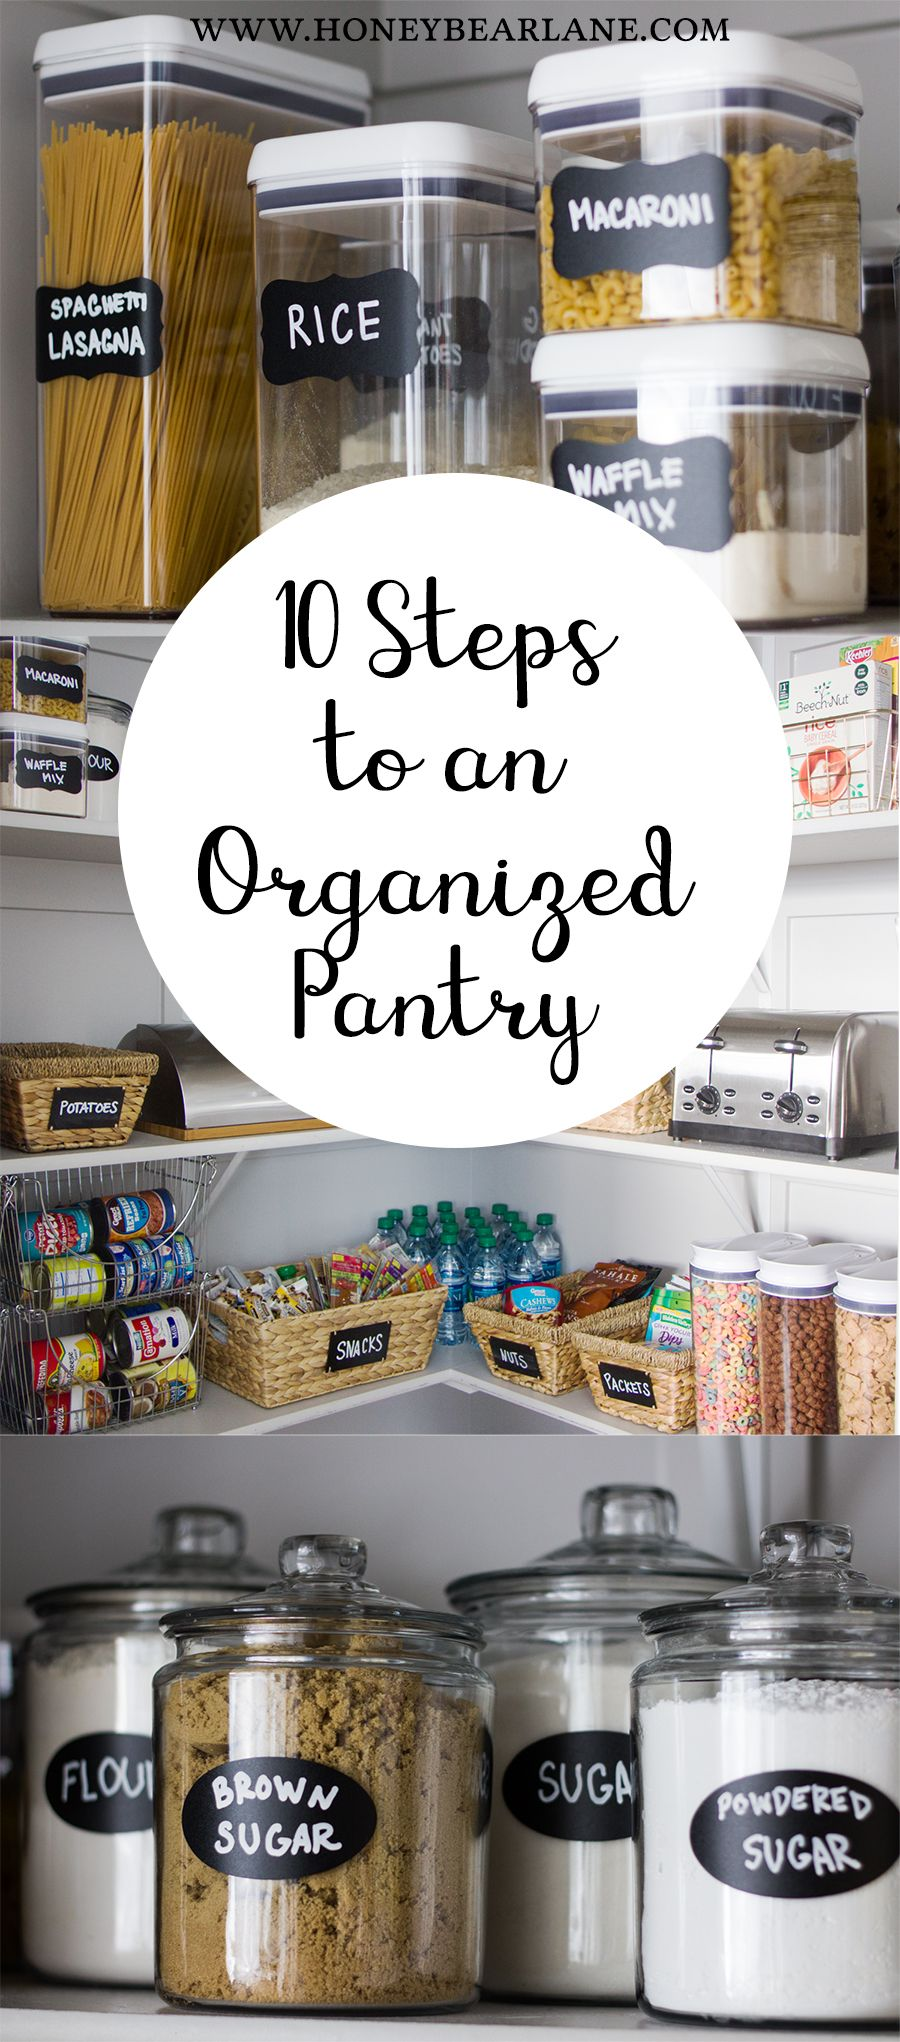 10 Steps to an Organized Pantry - Honeybear Lane